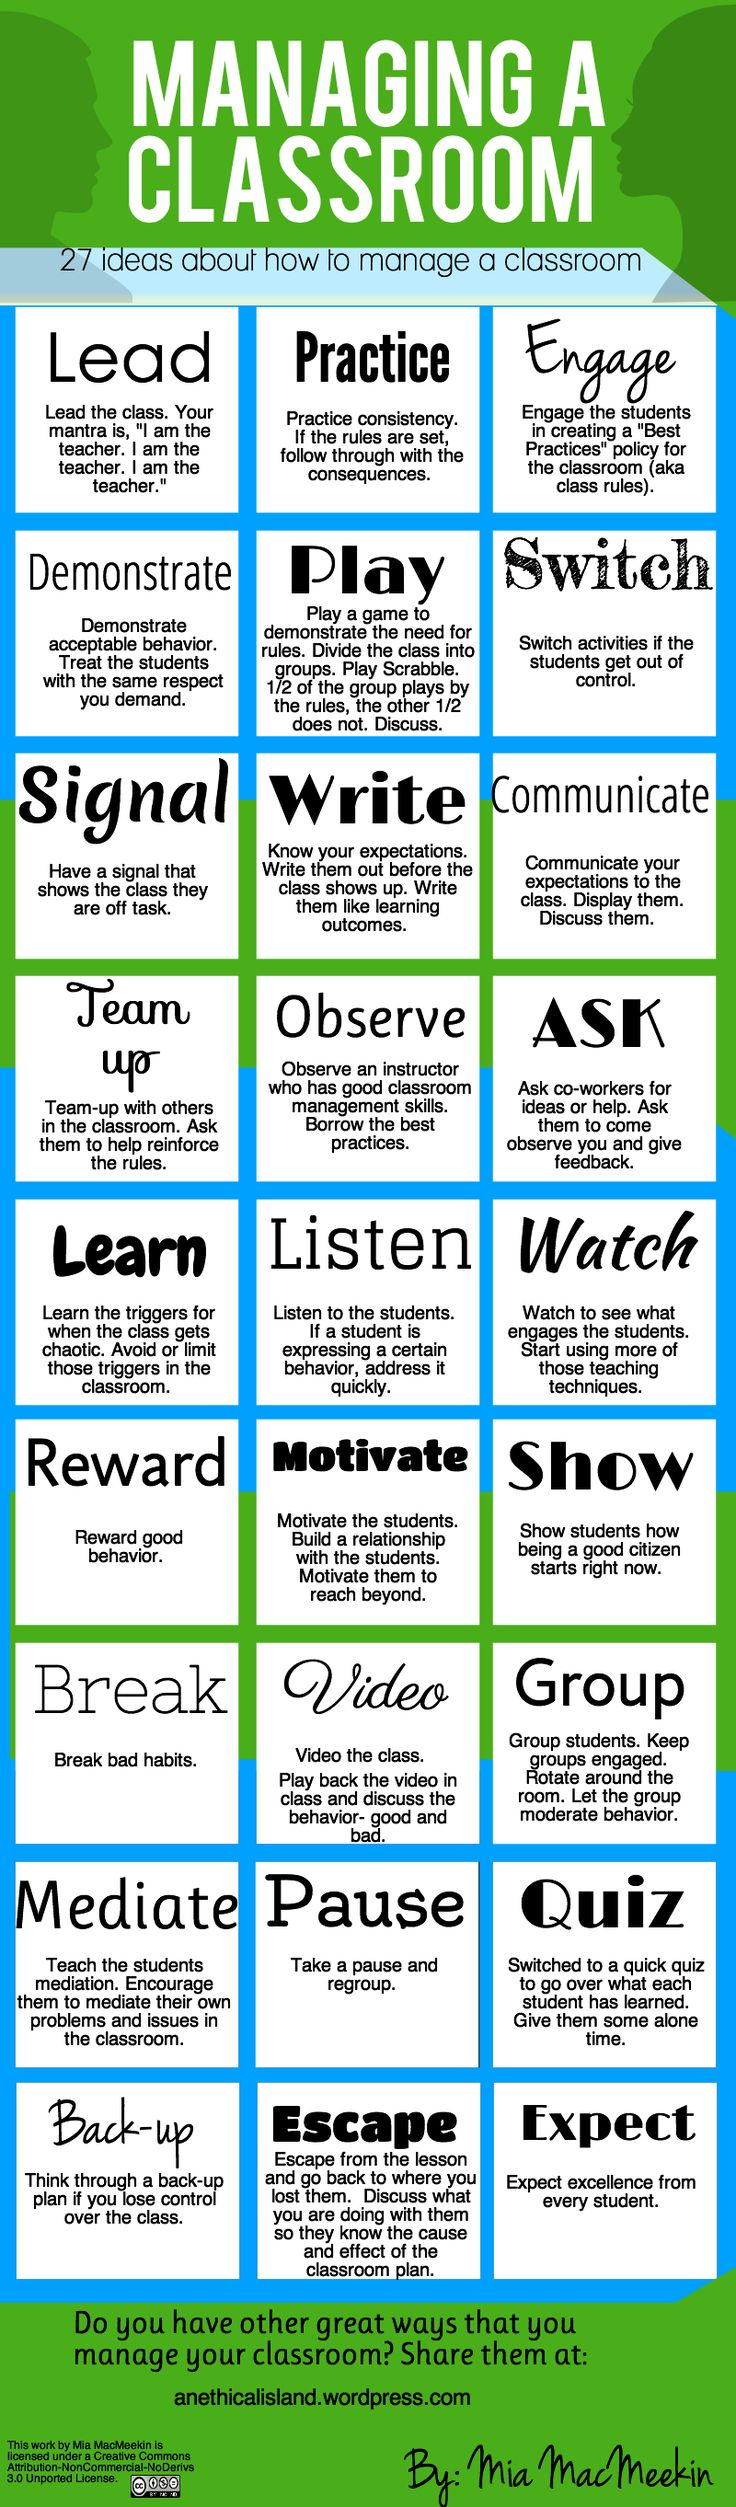 27 Ideas about Managing a Classroom--especially love the idea of taking a video of the class and discussing behaviors.